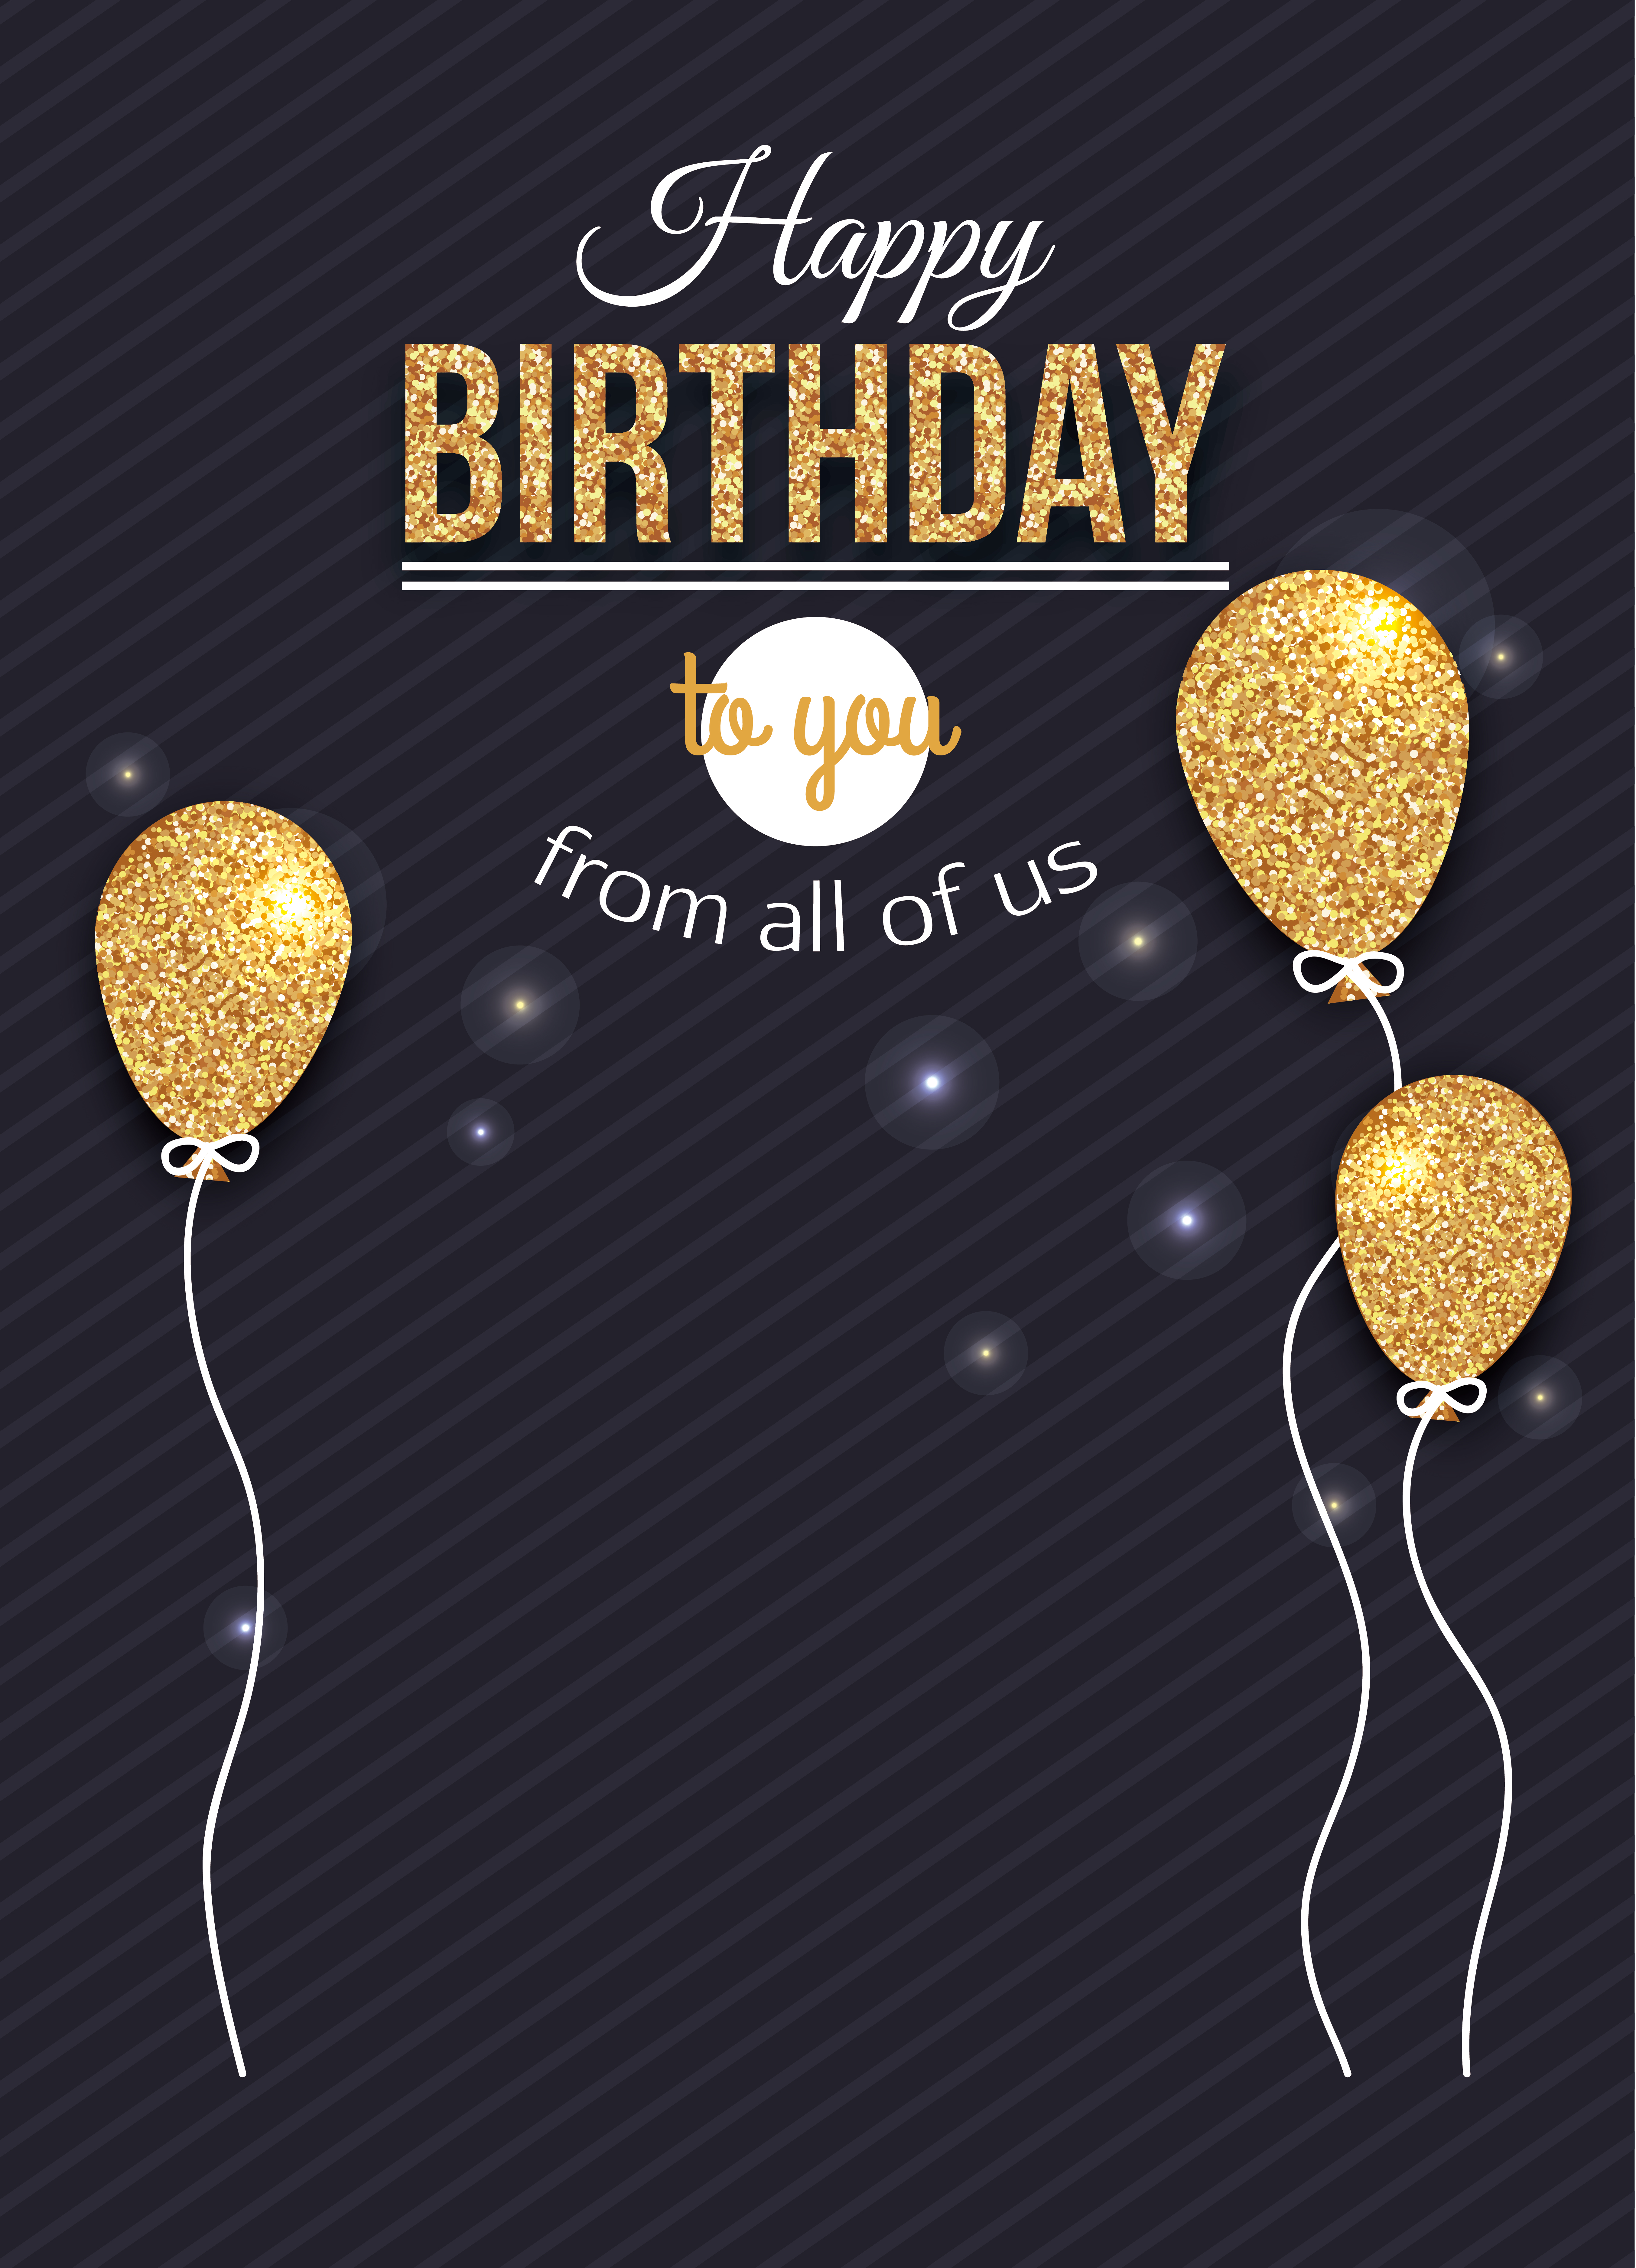 happy birthday balloons golden poster background material